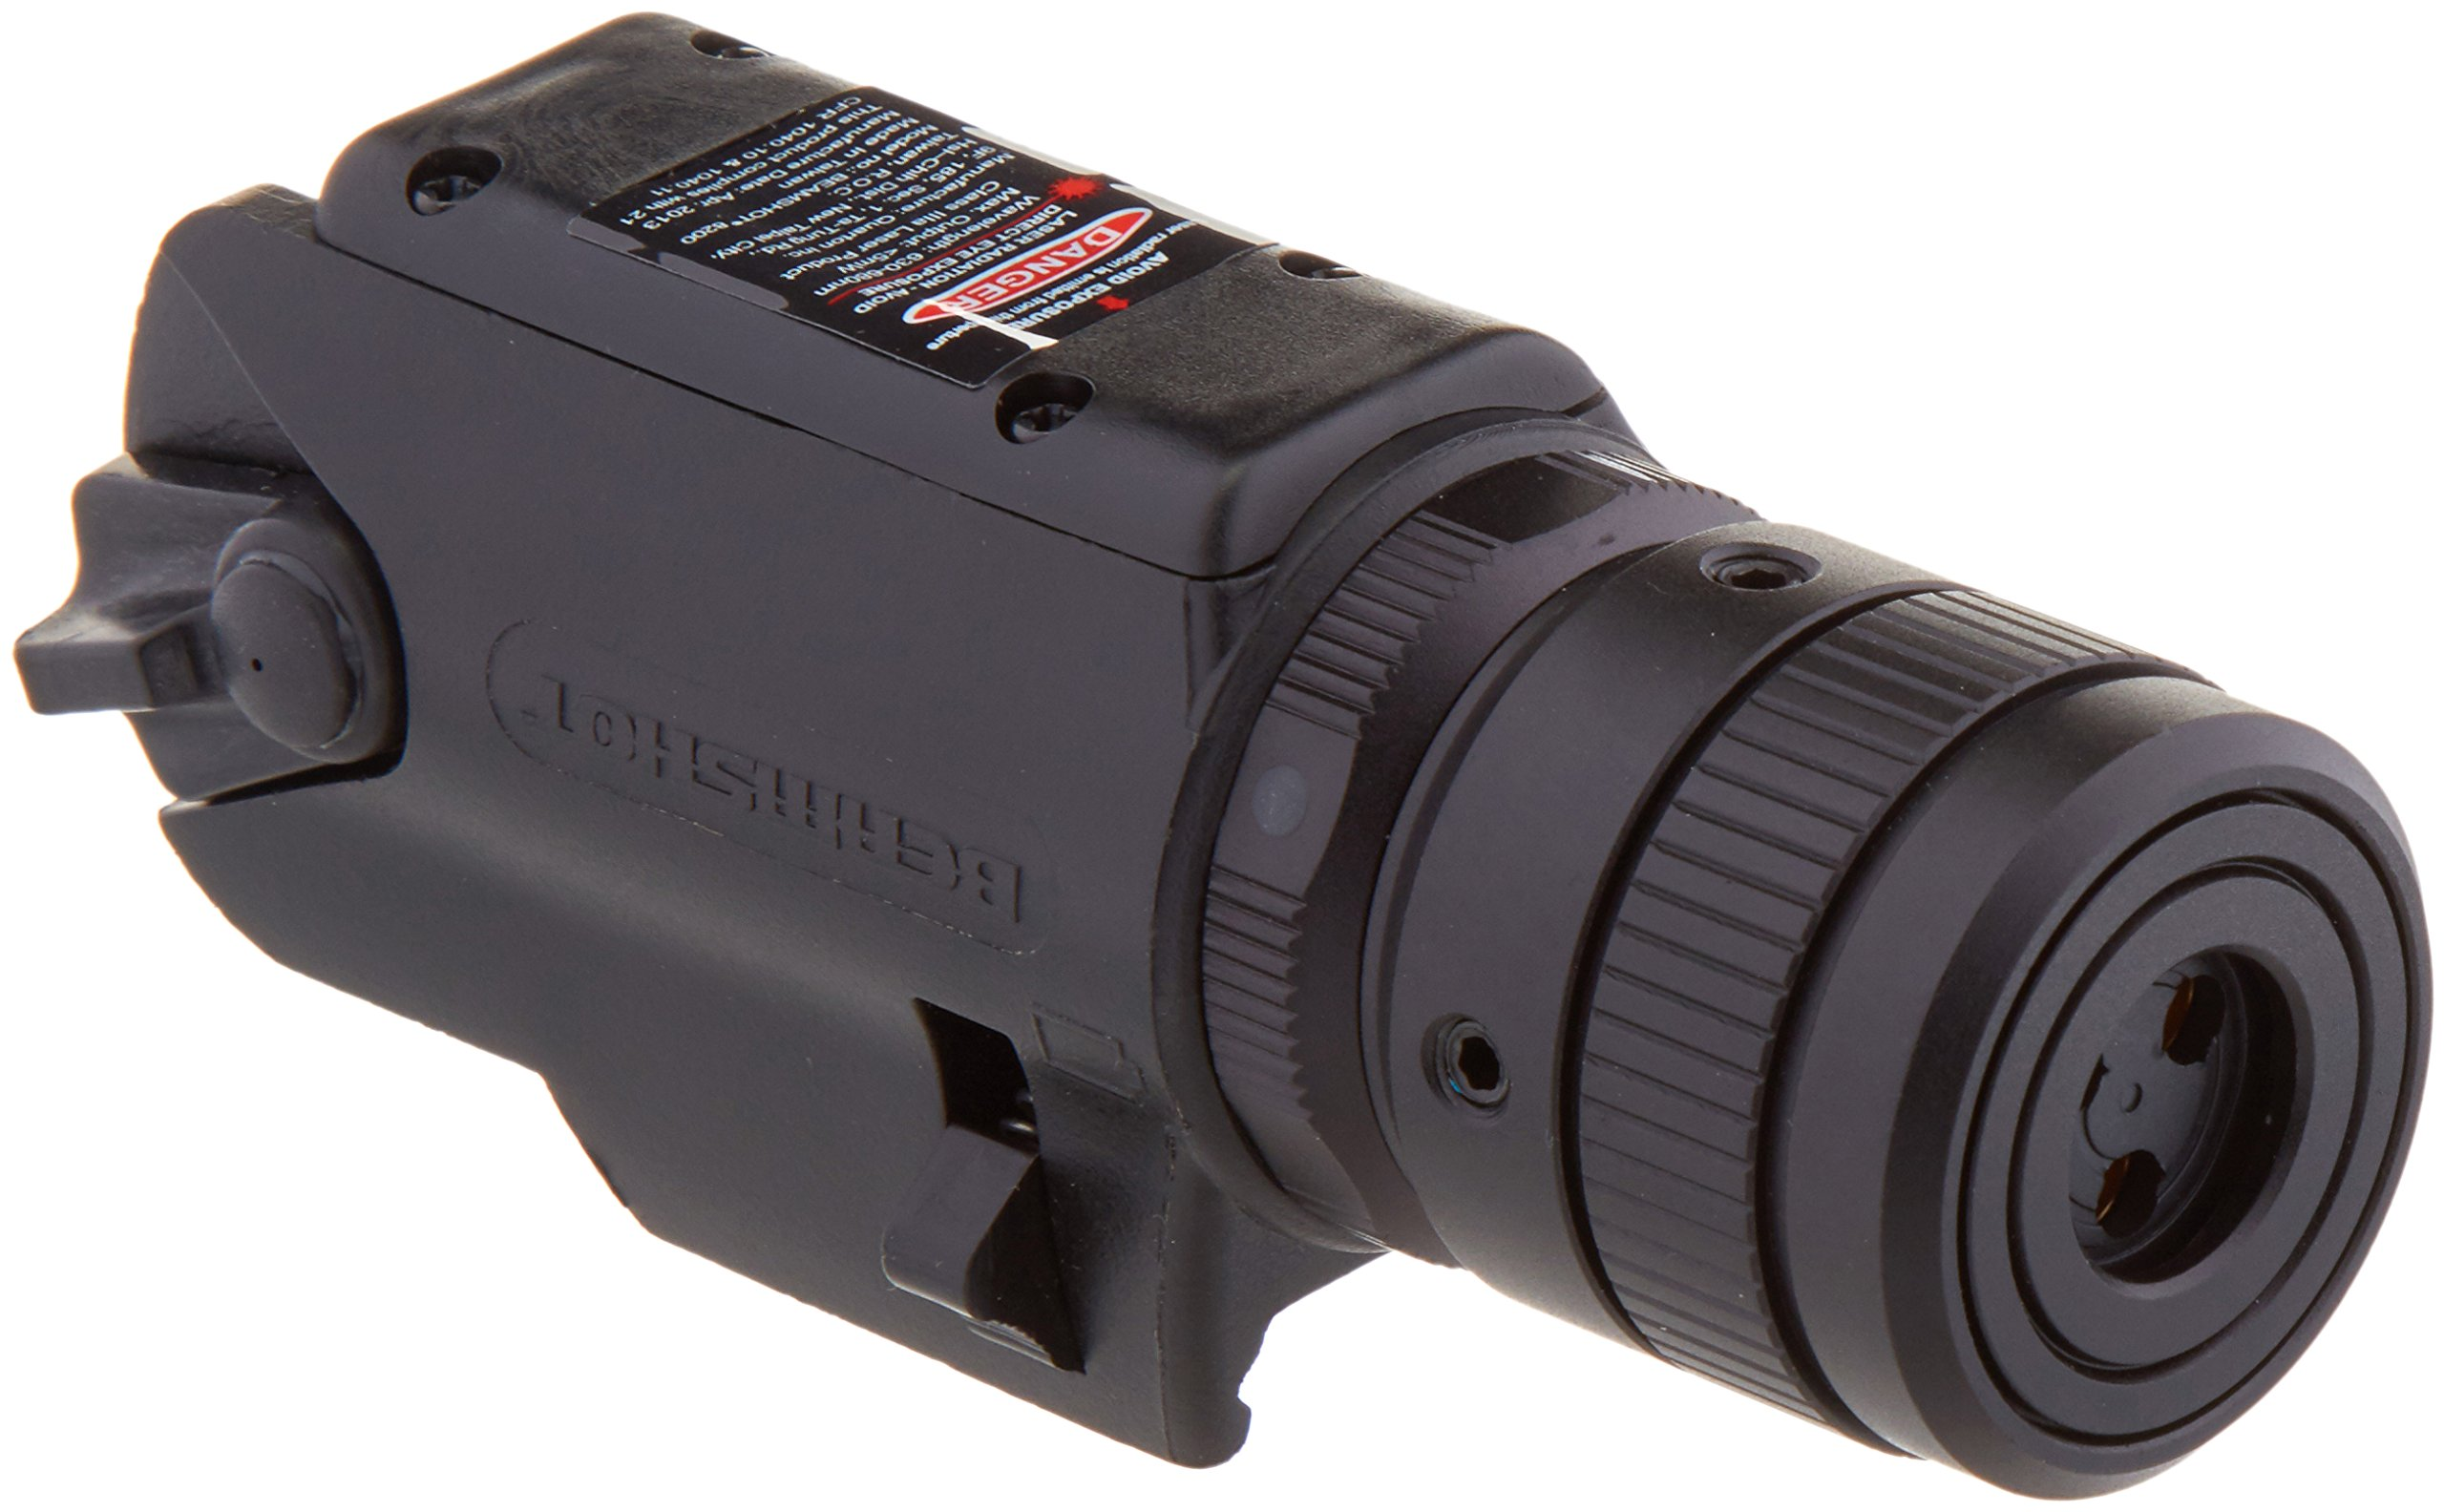 BEAMSHOT BS8200S Tri-Beam Laser Sight for Rapid Target Acquisition/Unique TRI-Beam Laser Design by Beamshot(CR123A Battery included) by Beamshot